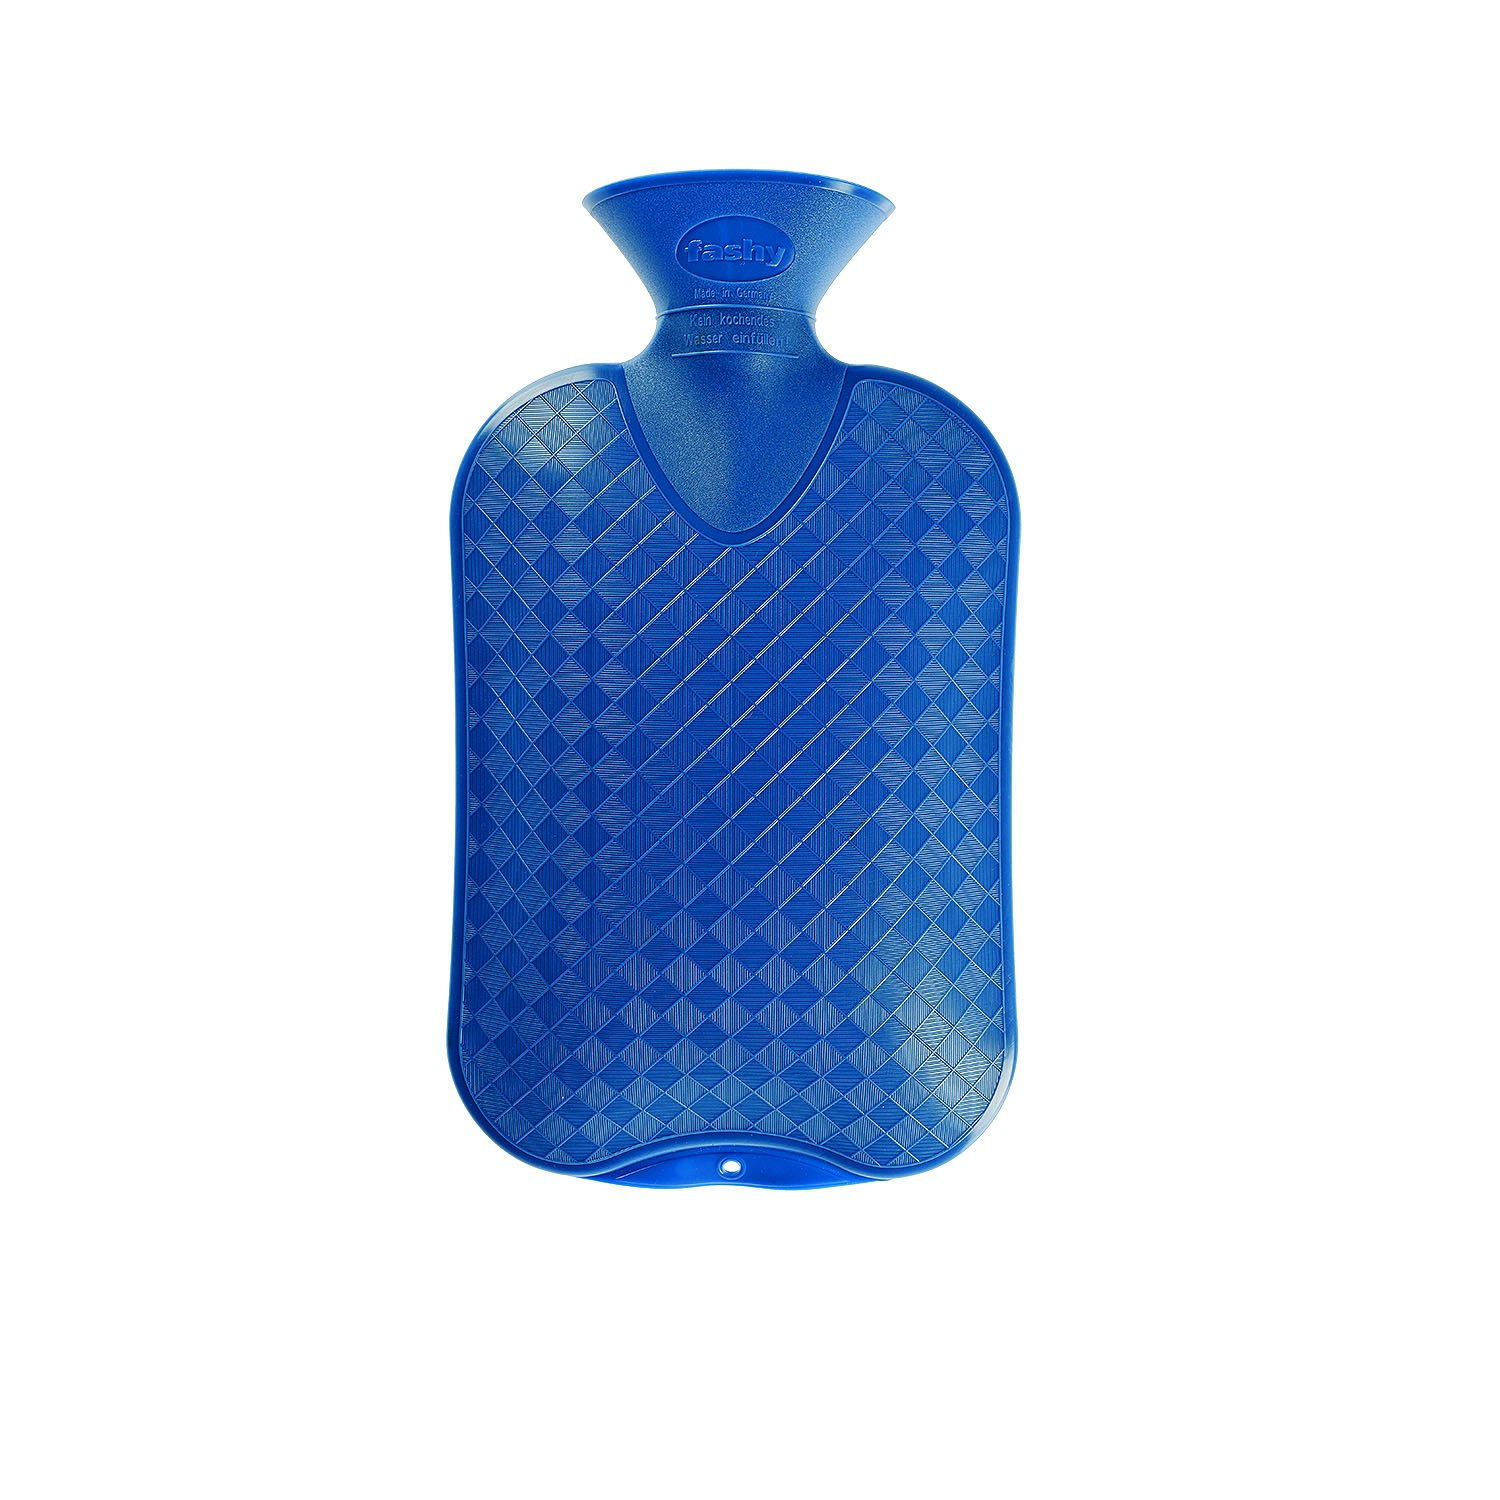 Fashy Classic Cross-Hatched Hot Water Bottle - BLUE - Made in Germany